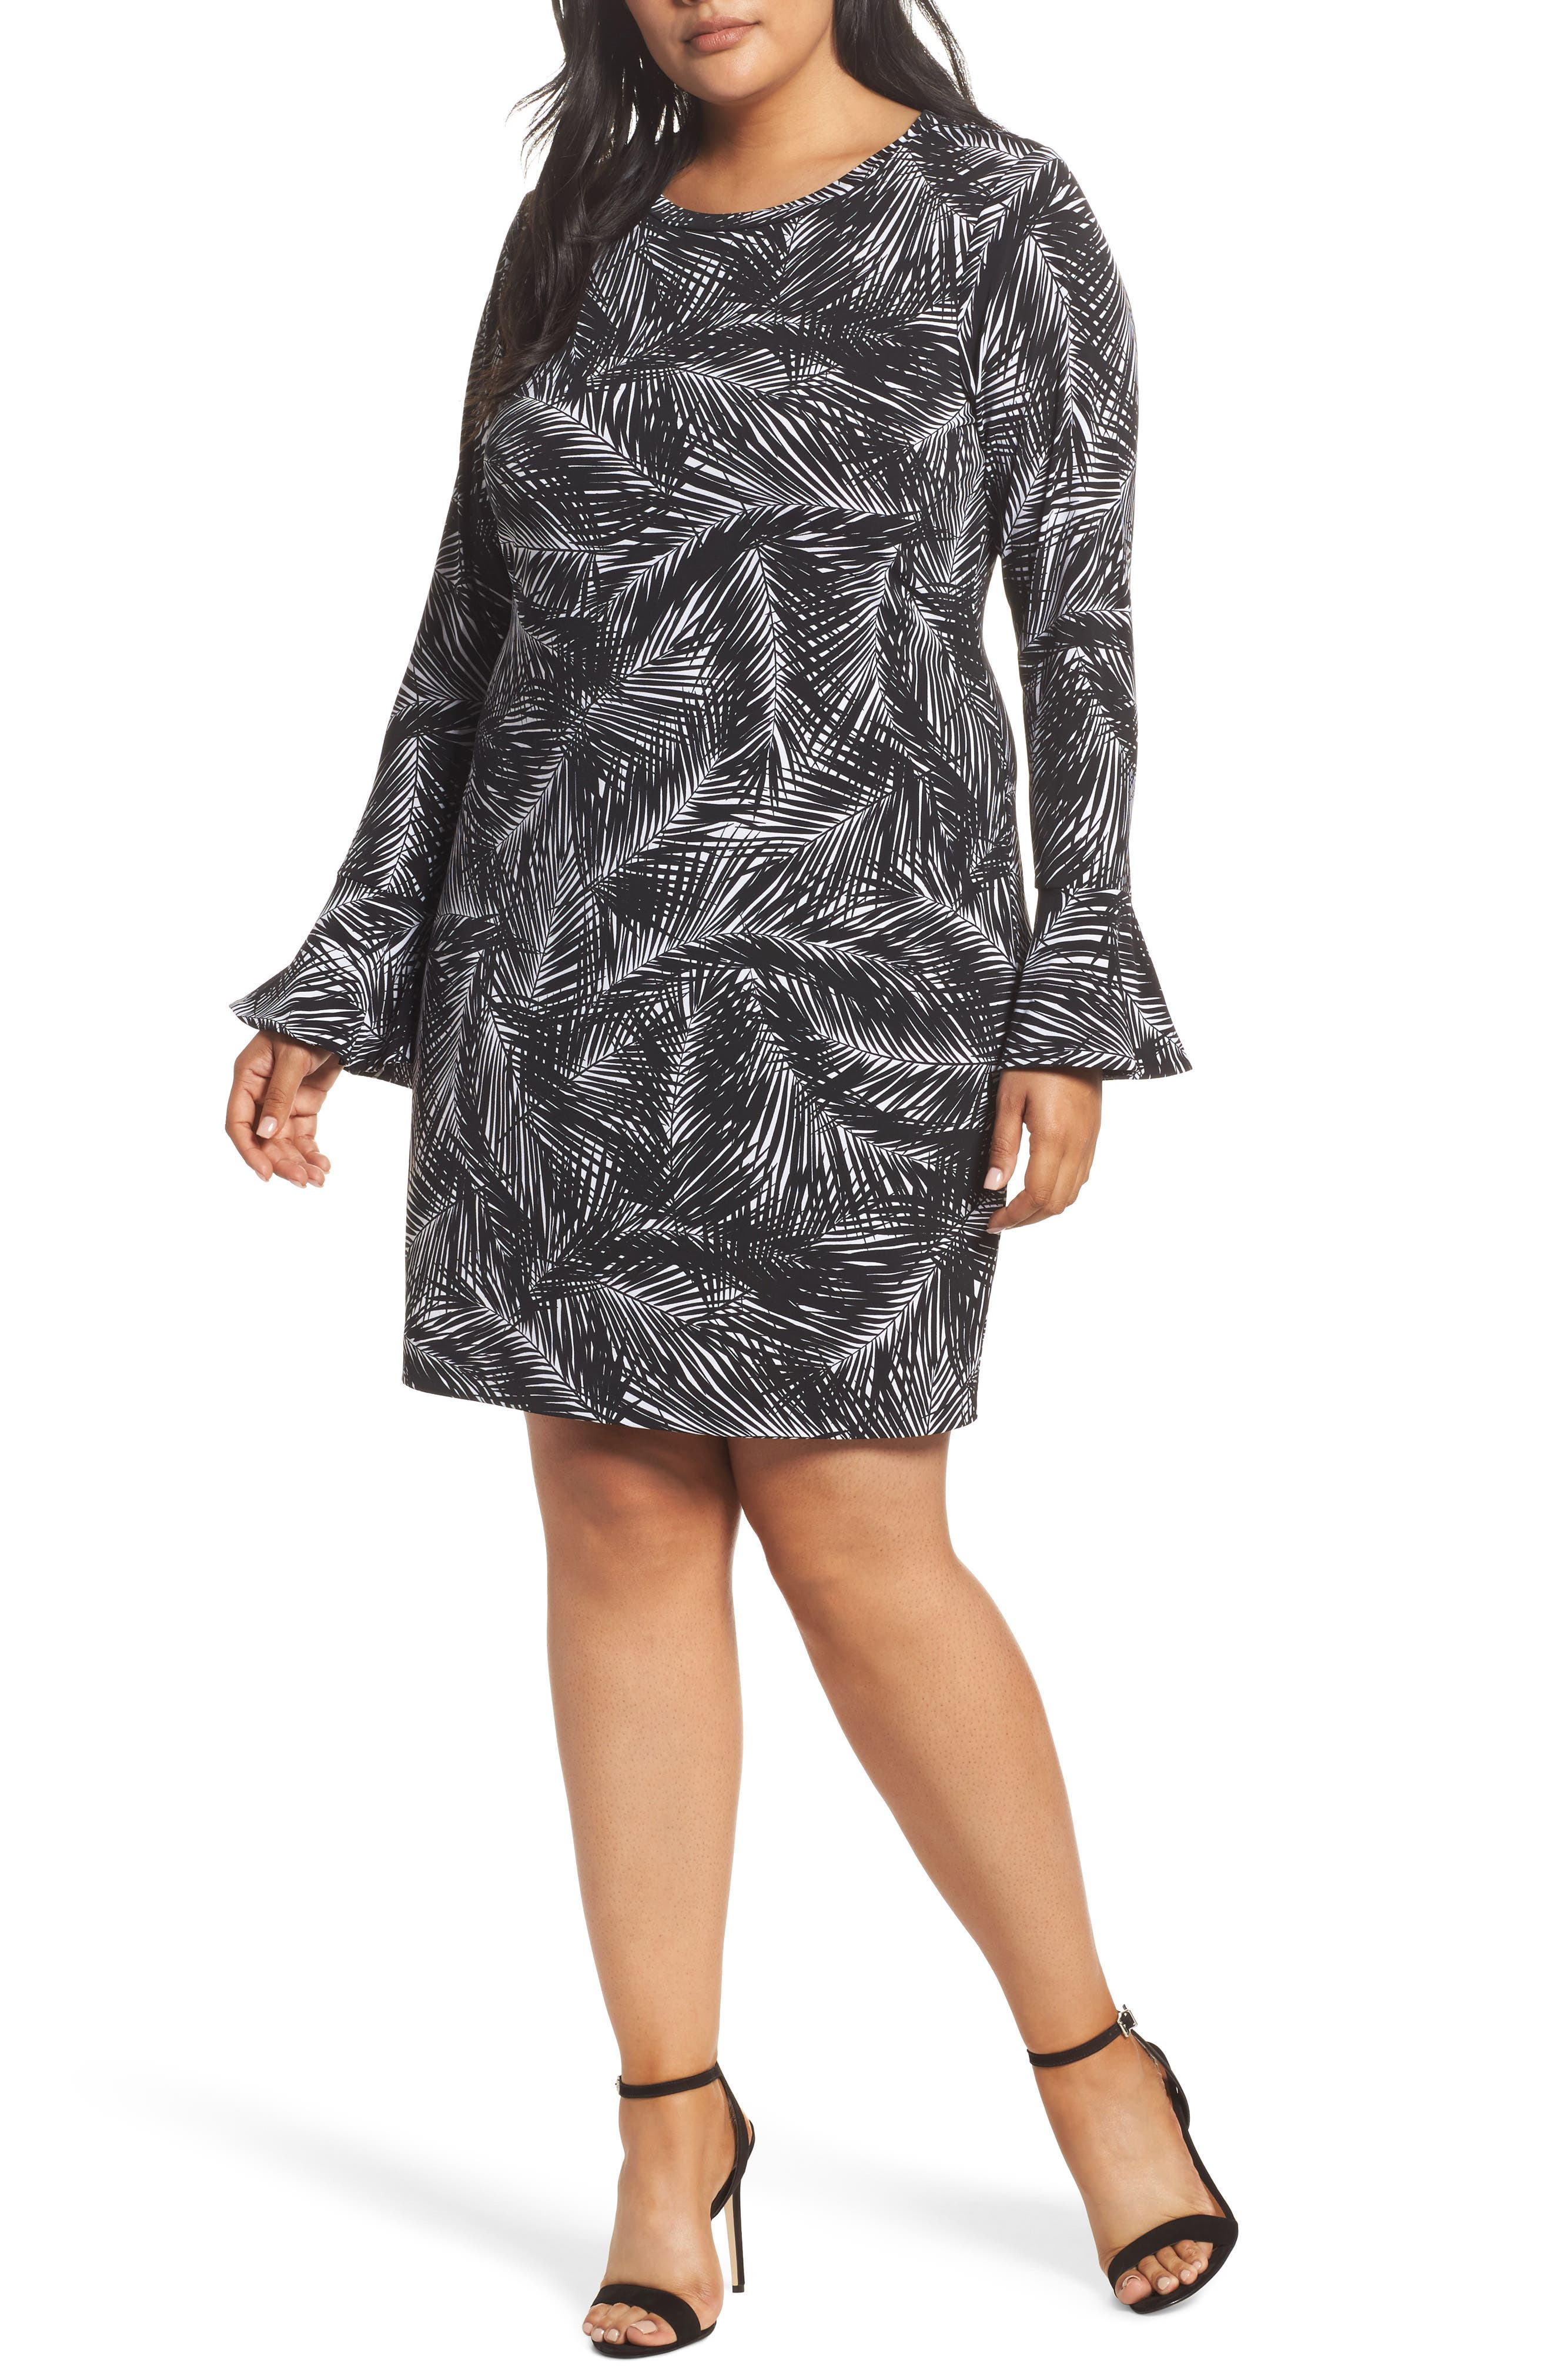 Alternate Image 1 Selected - MICHAEL Michael Kors Abstract Palm Dress (Plus Size)